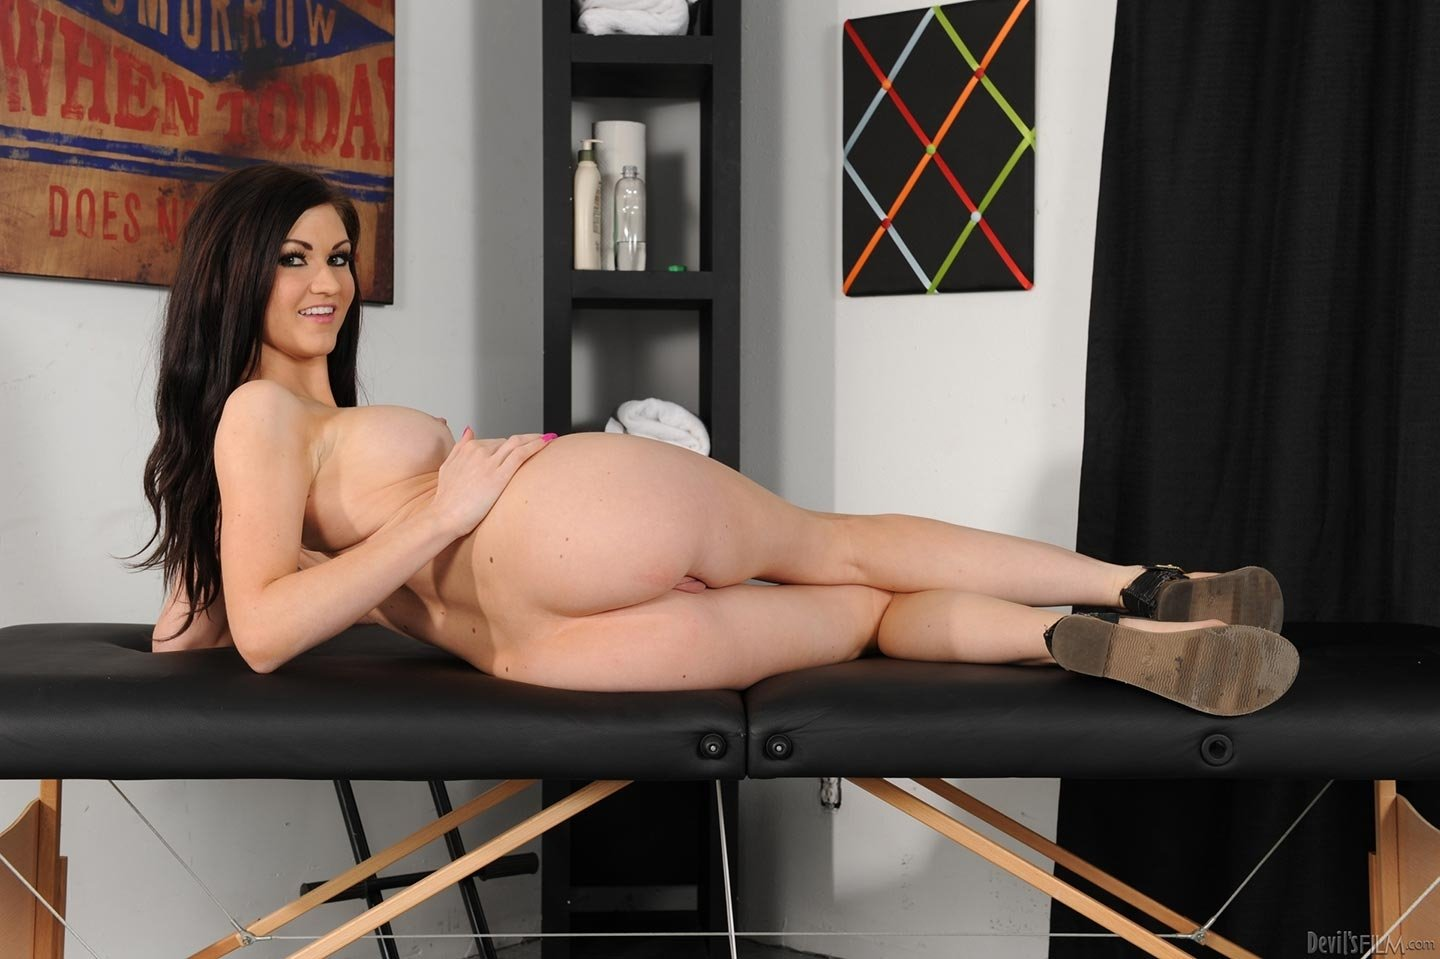 Visit http://www.allanalpass.com/CMQ95 for more sex video there